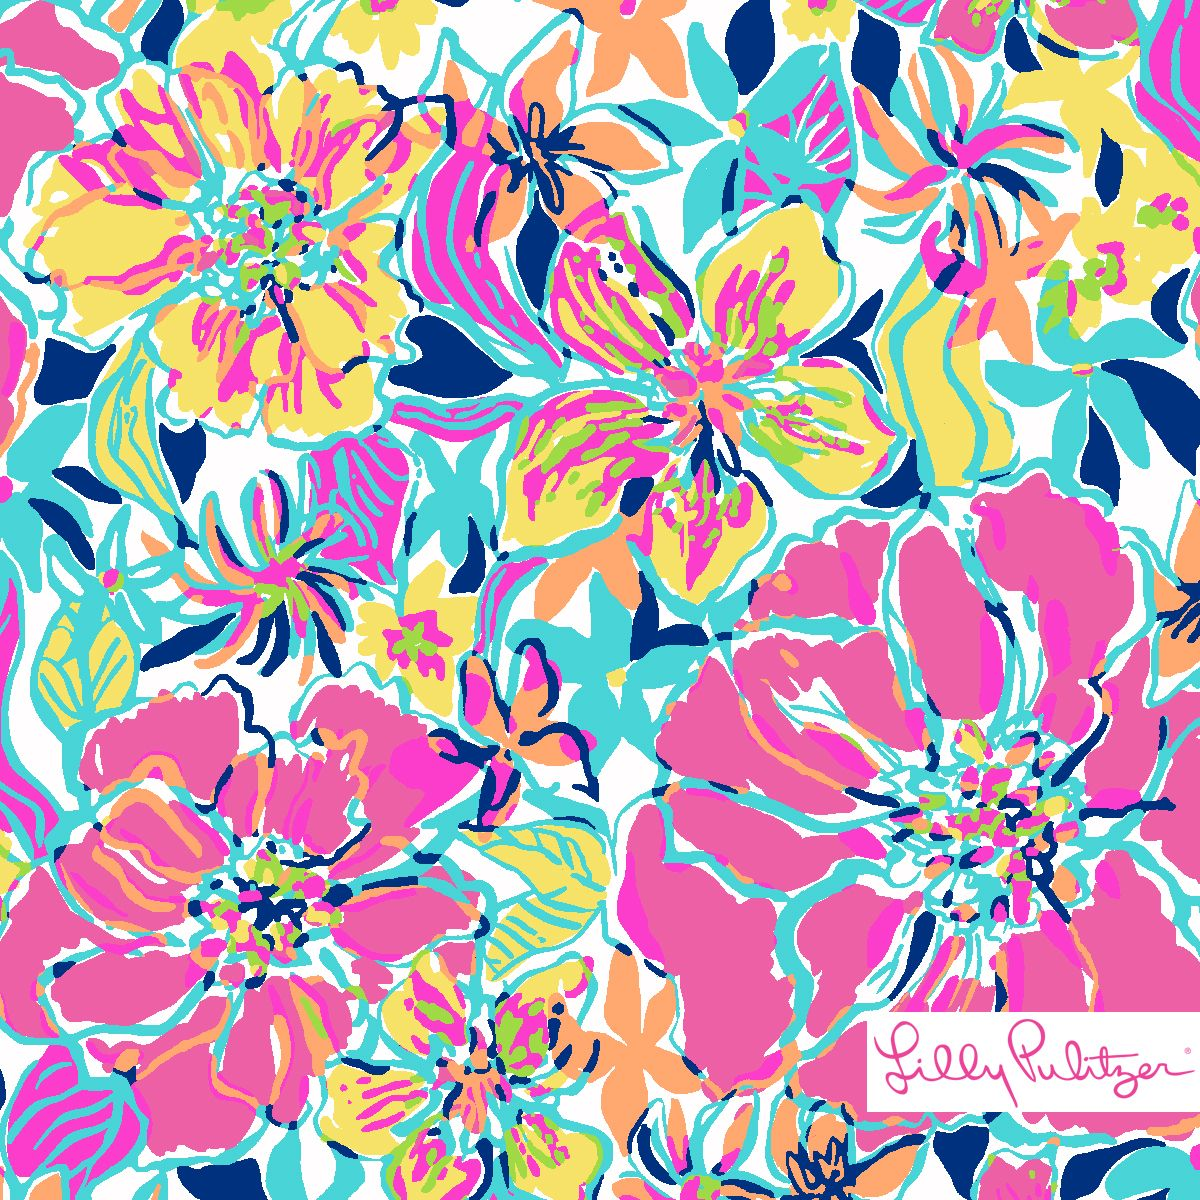 Lilly Pulitzer Fabric Lilly Pulitzer Besame Mucho Print Printed Pinterest Printing